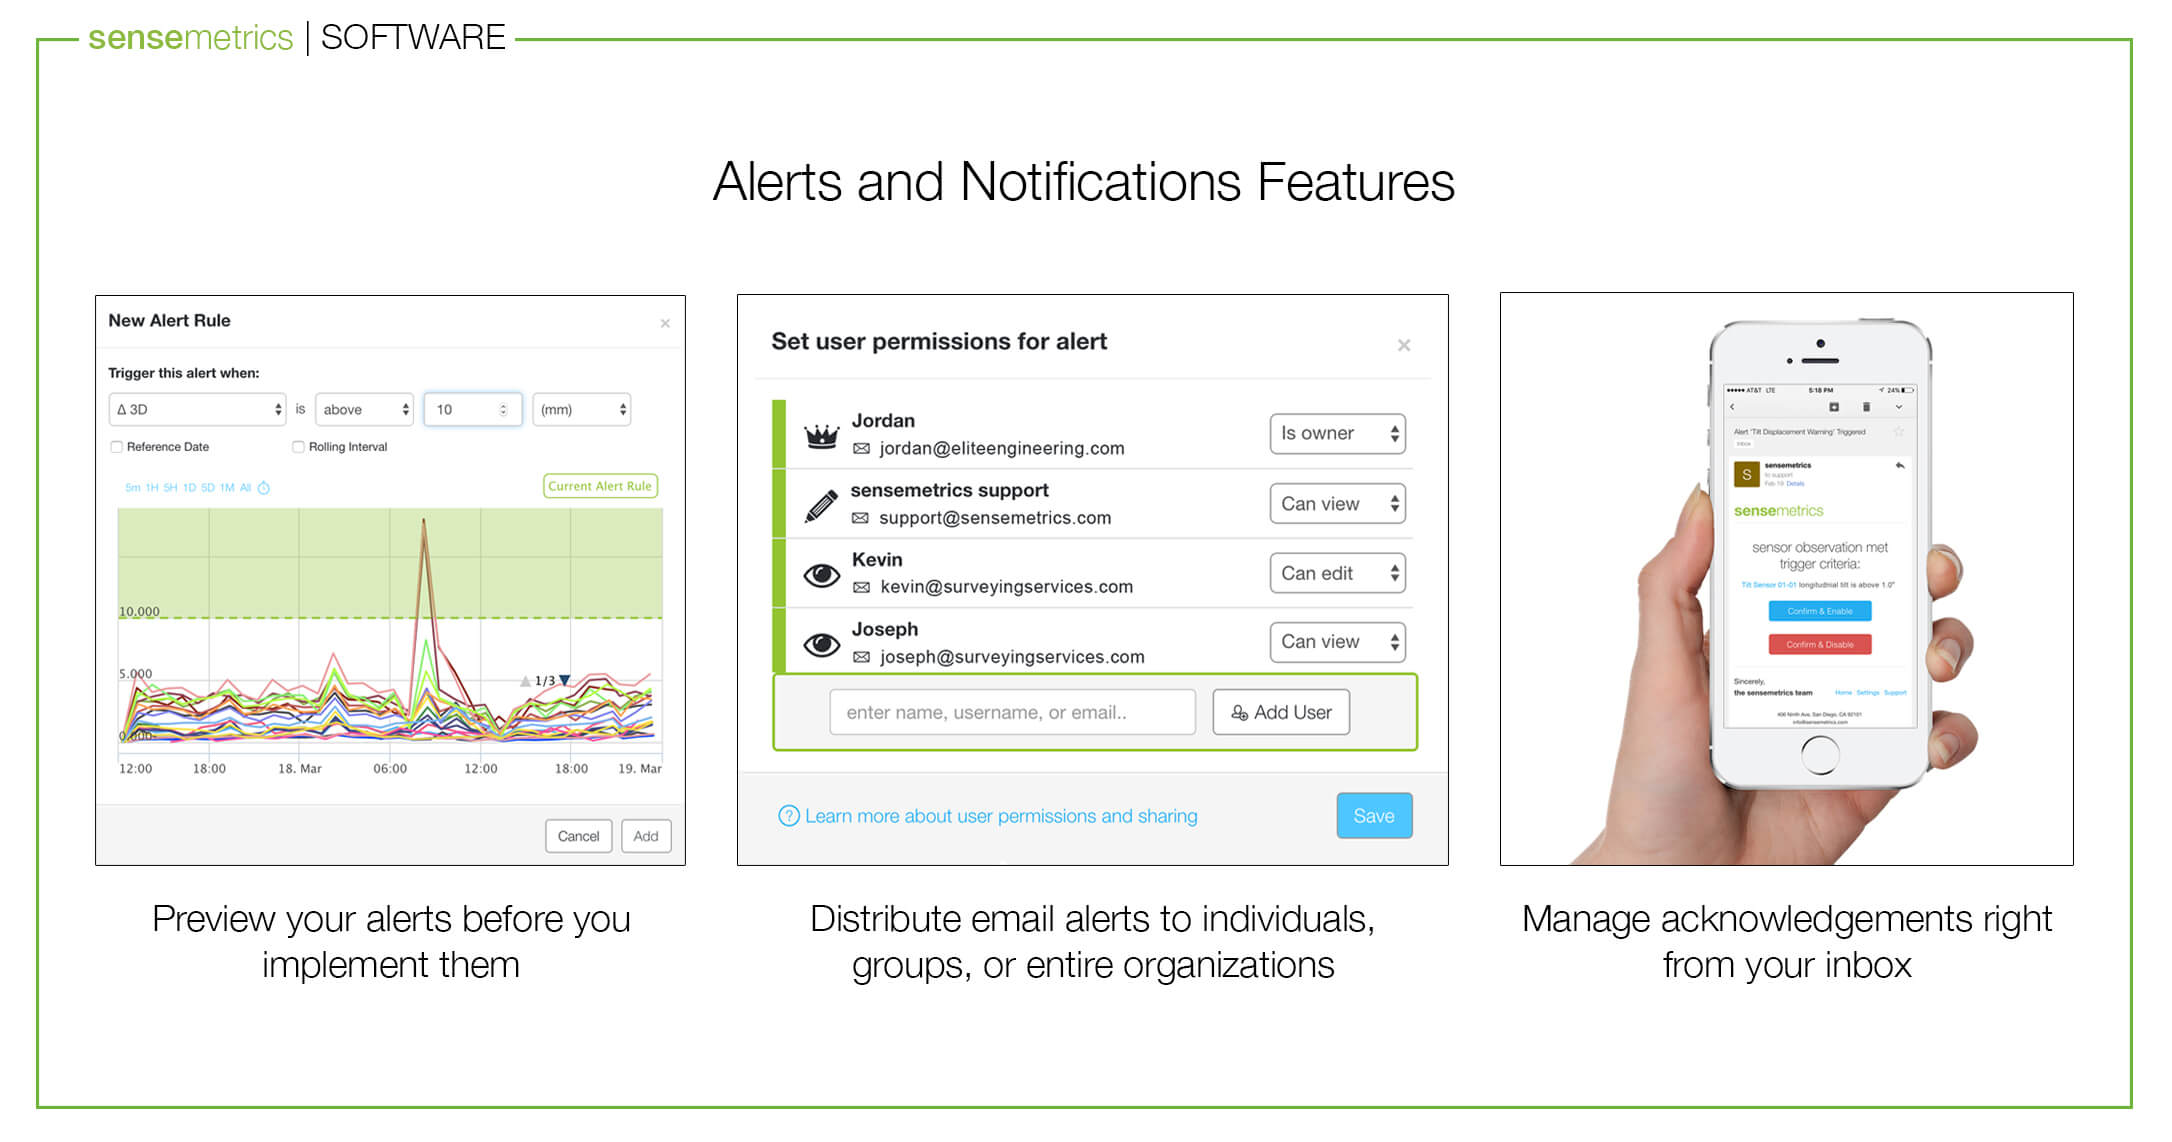 Software Features: Alerts & Notifications